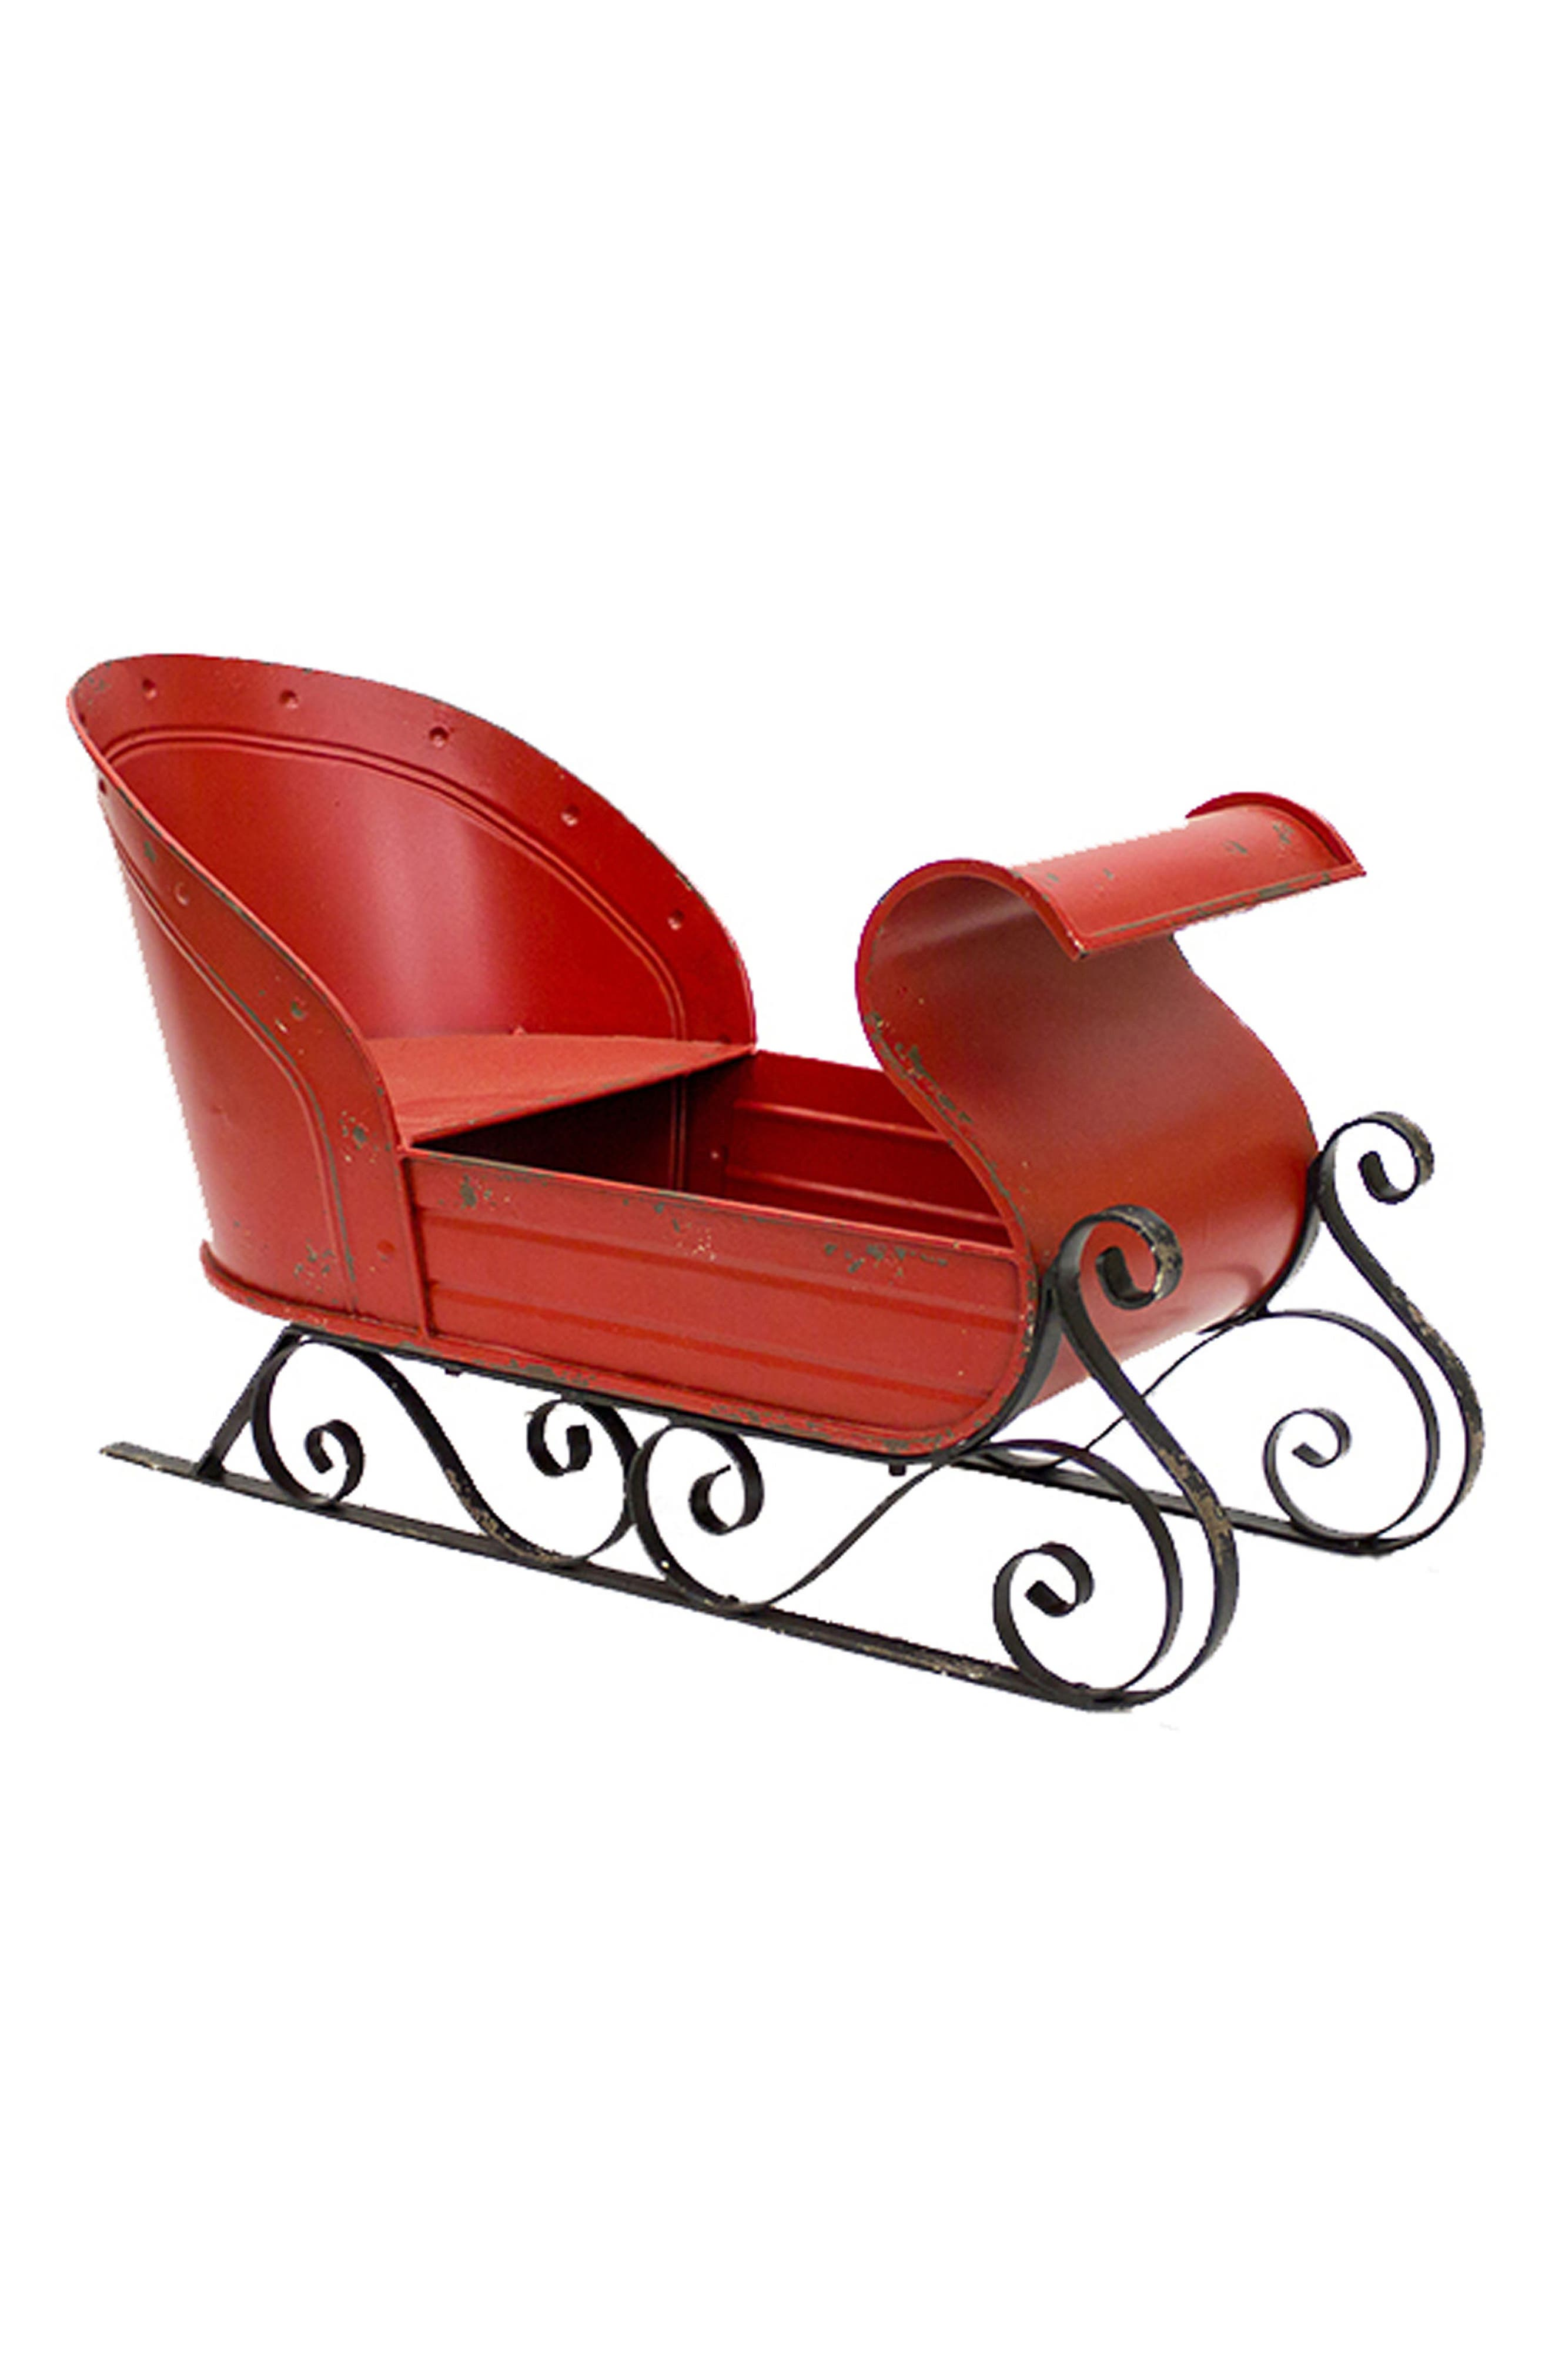 Sleigh Decoration,                         Main,                         color, RED BLACK